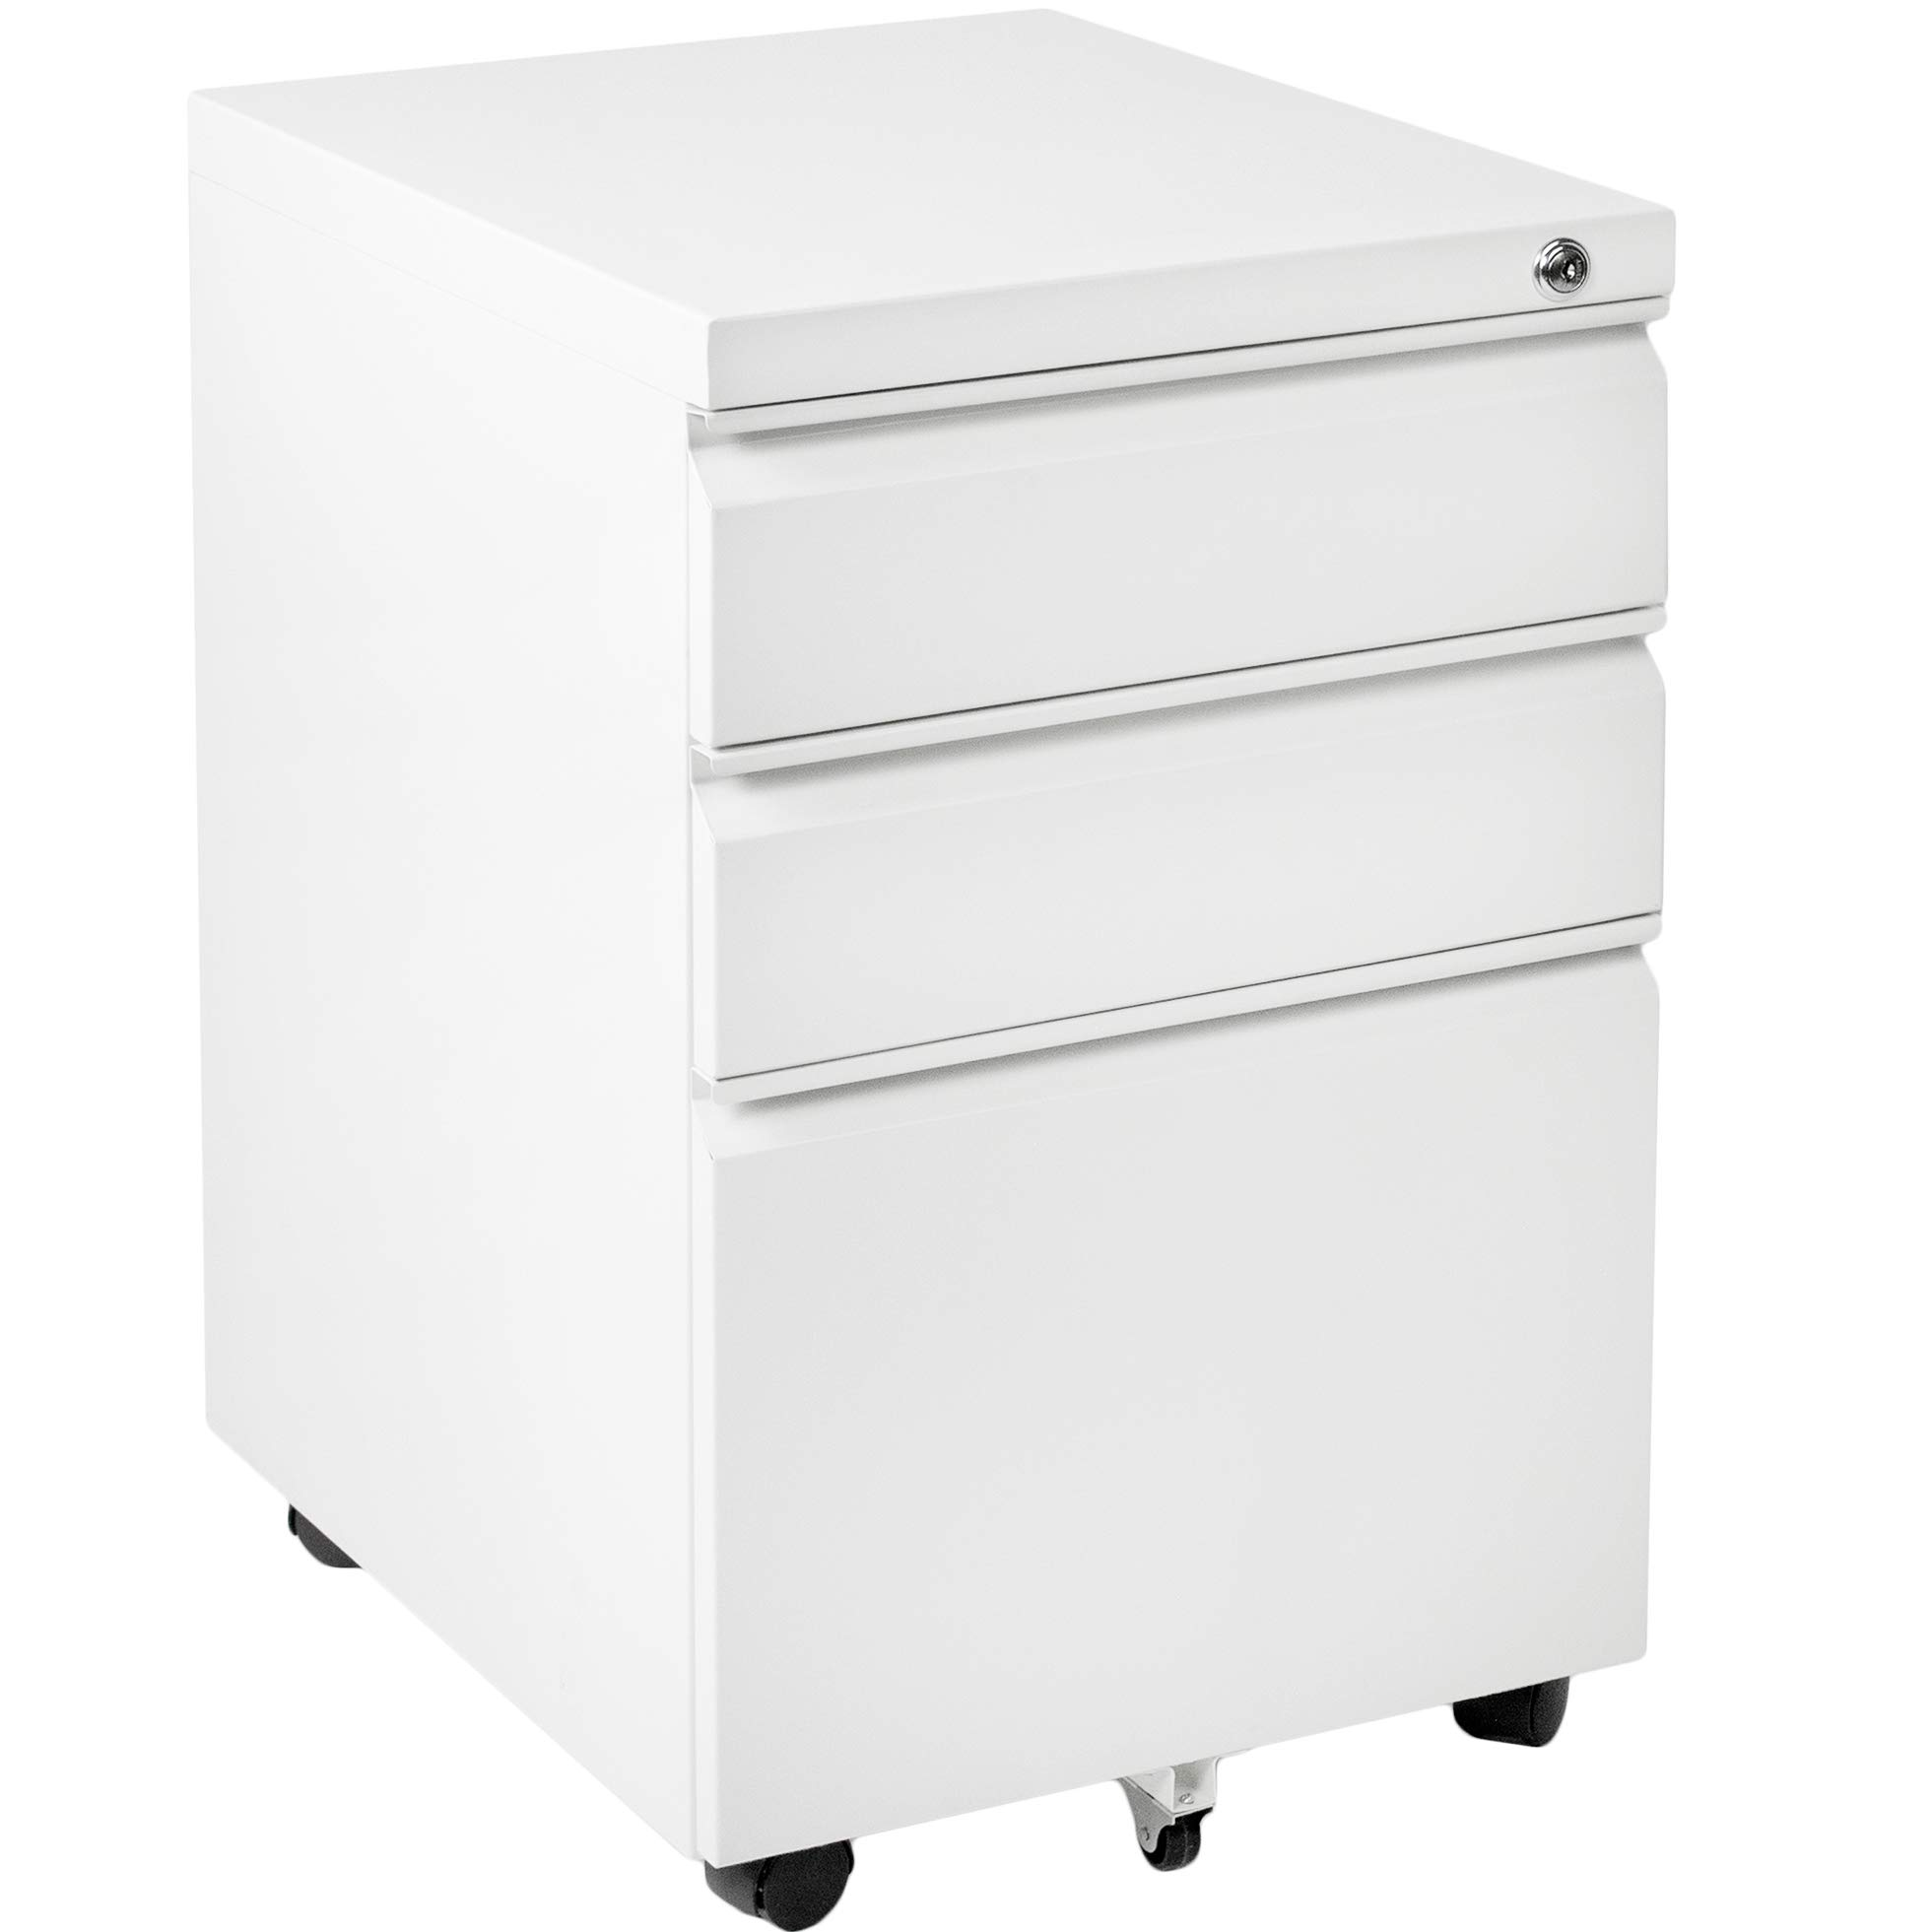 VIVO White Steel 3 Drawer Mobile Office File Cabinet with Lock | Rolling Pedestal Storage Cabinet on Wheels (FILE-MB01W)